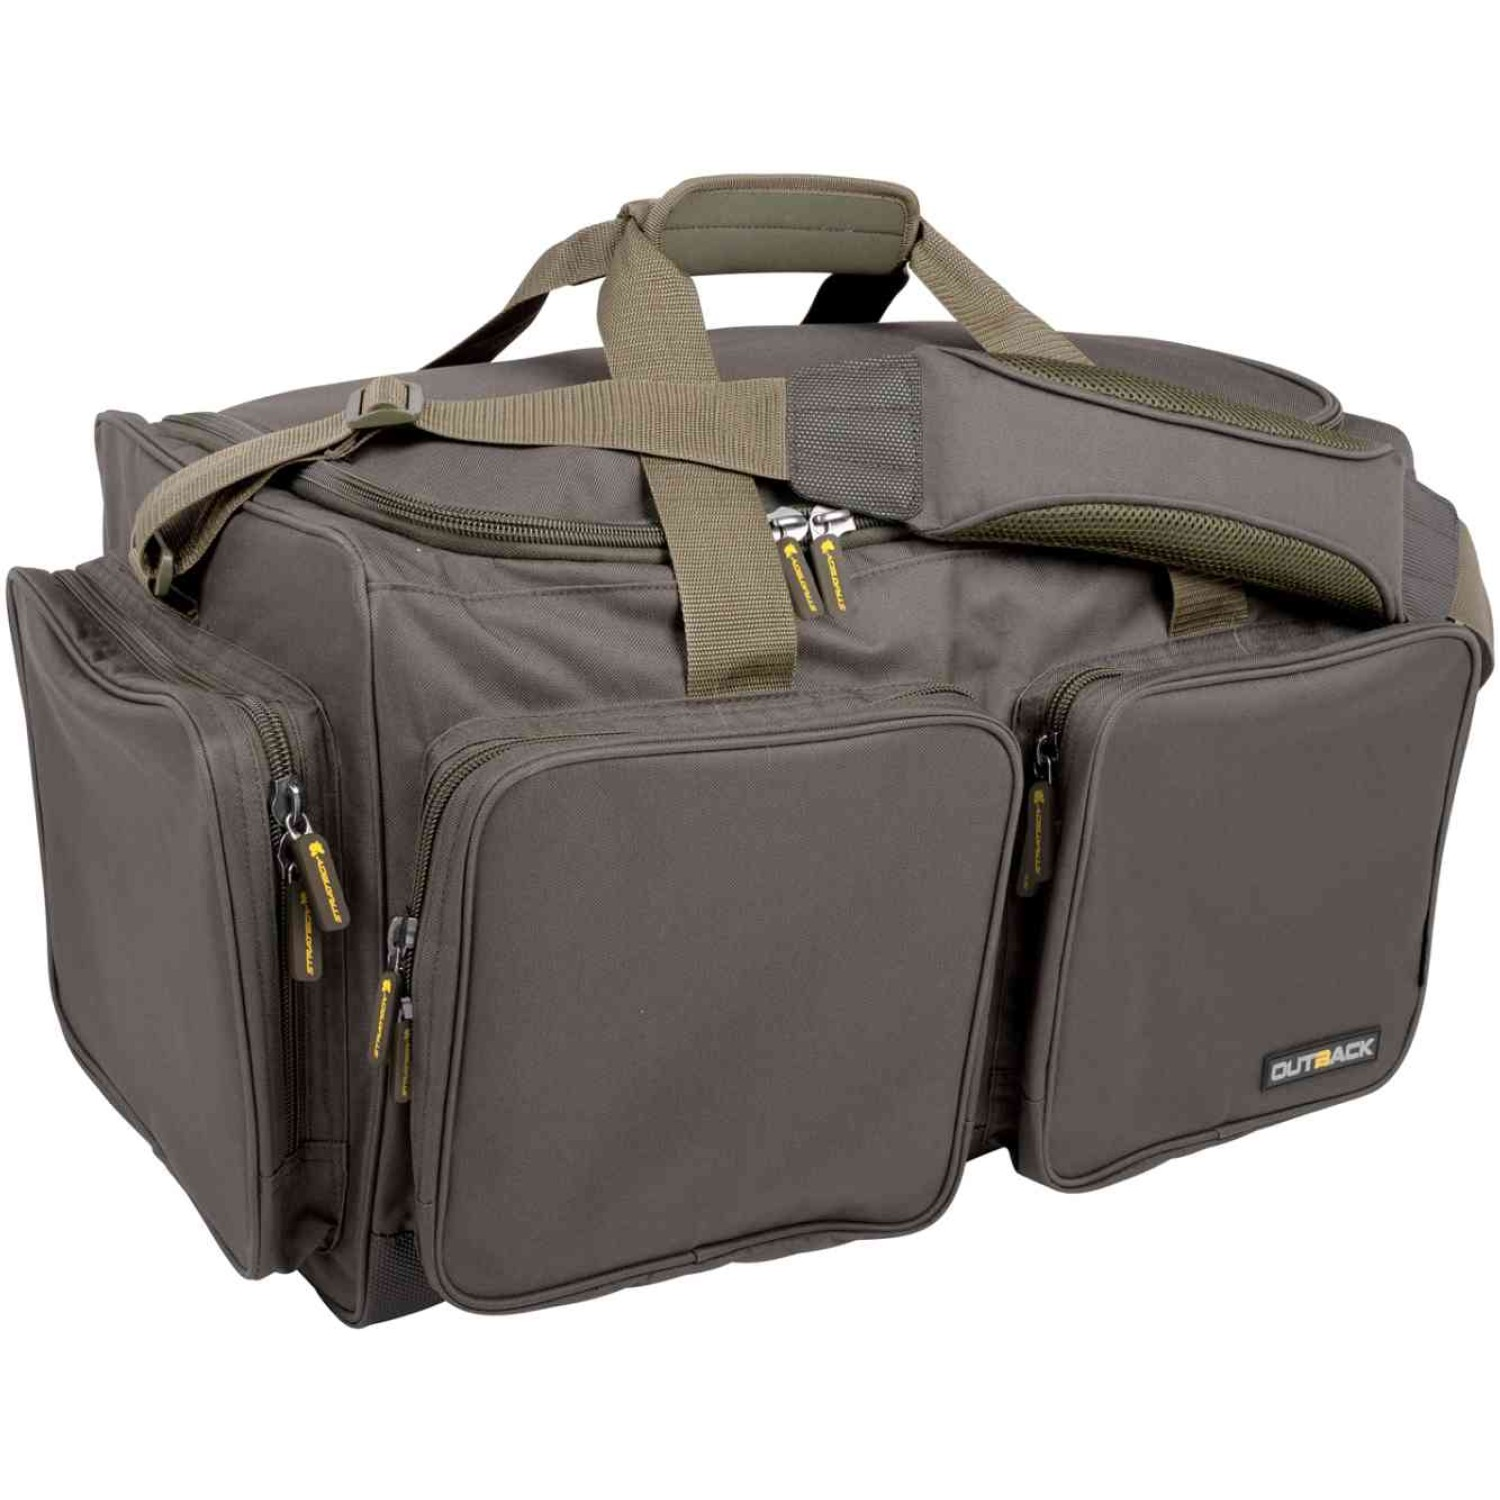 Spro Strategy Outback Carry-All